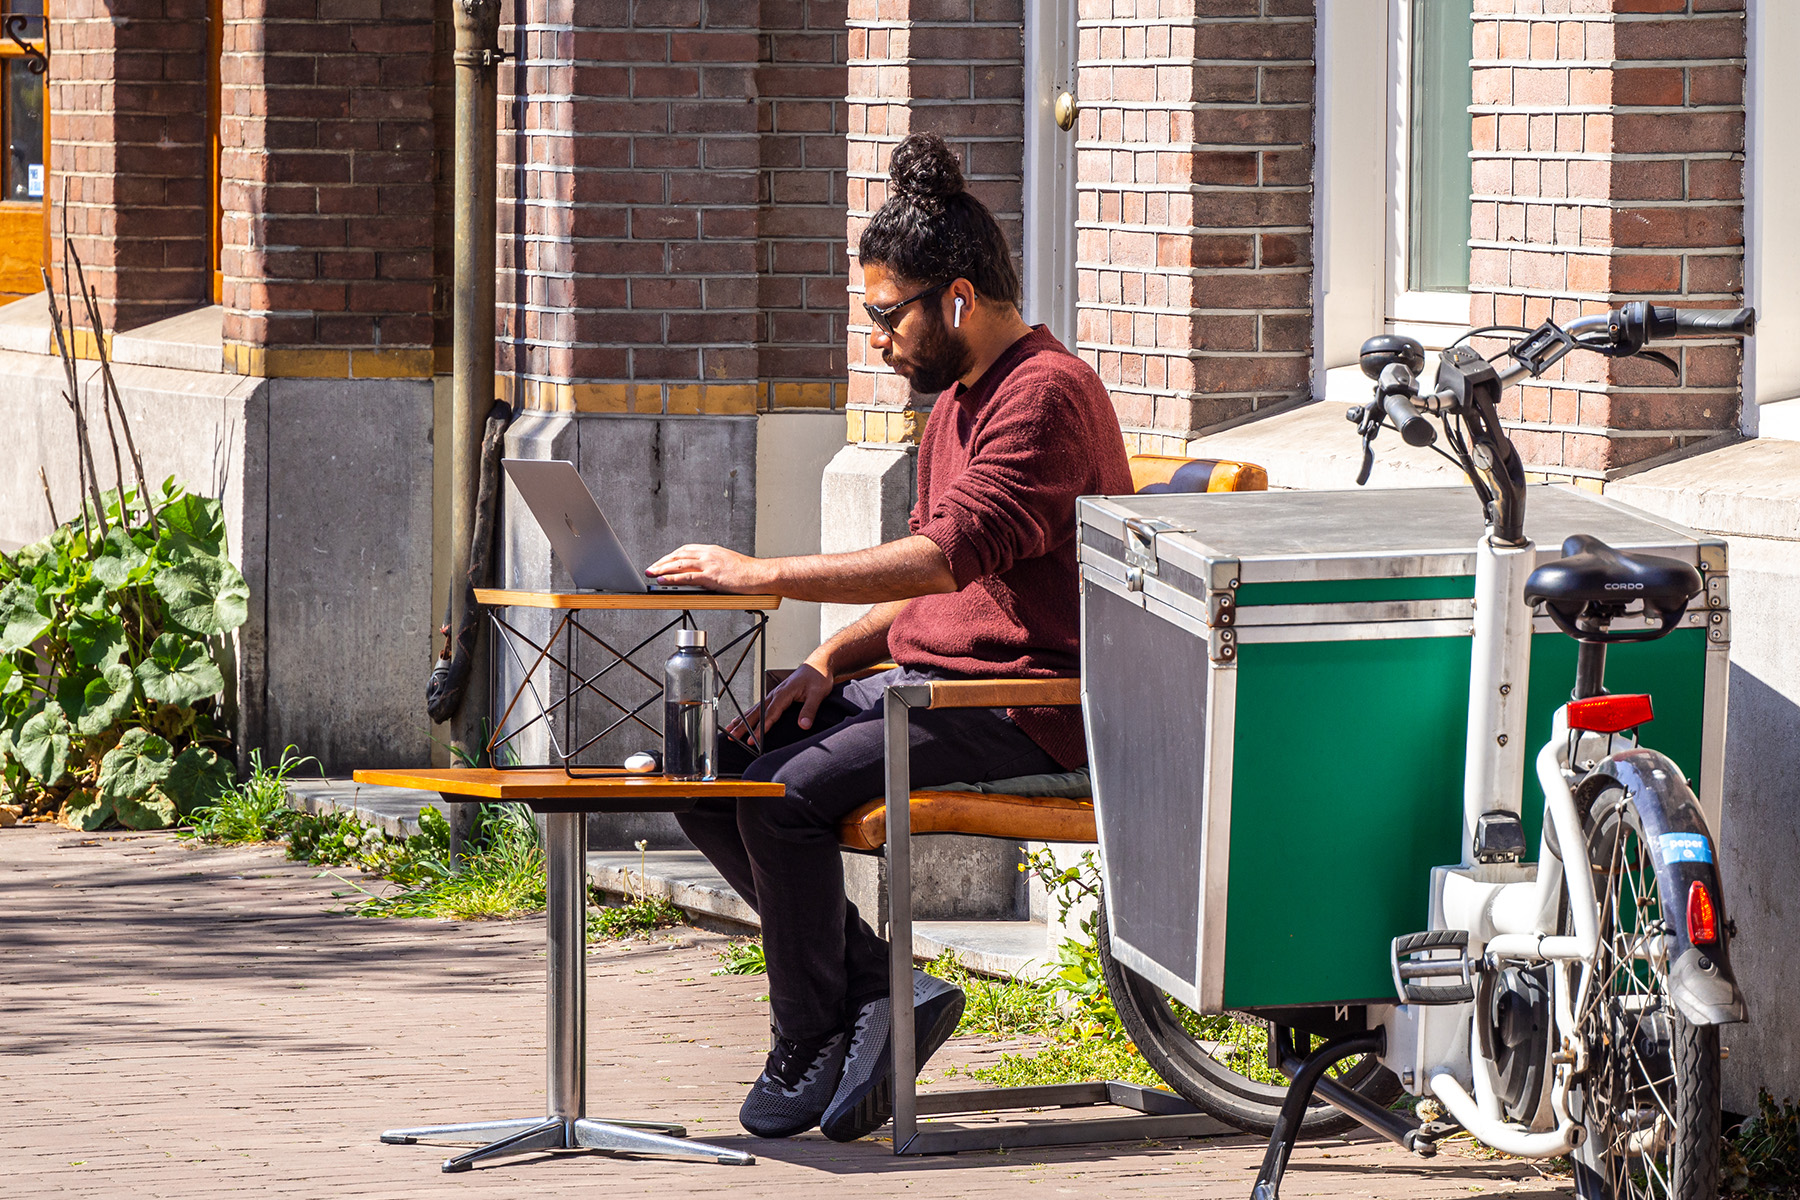 Freelancer working on his laptop in Amsterdam